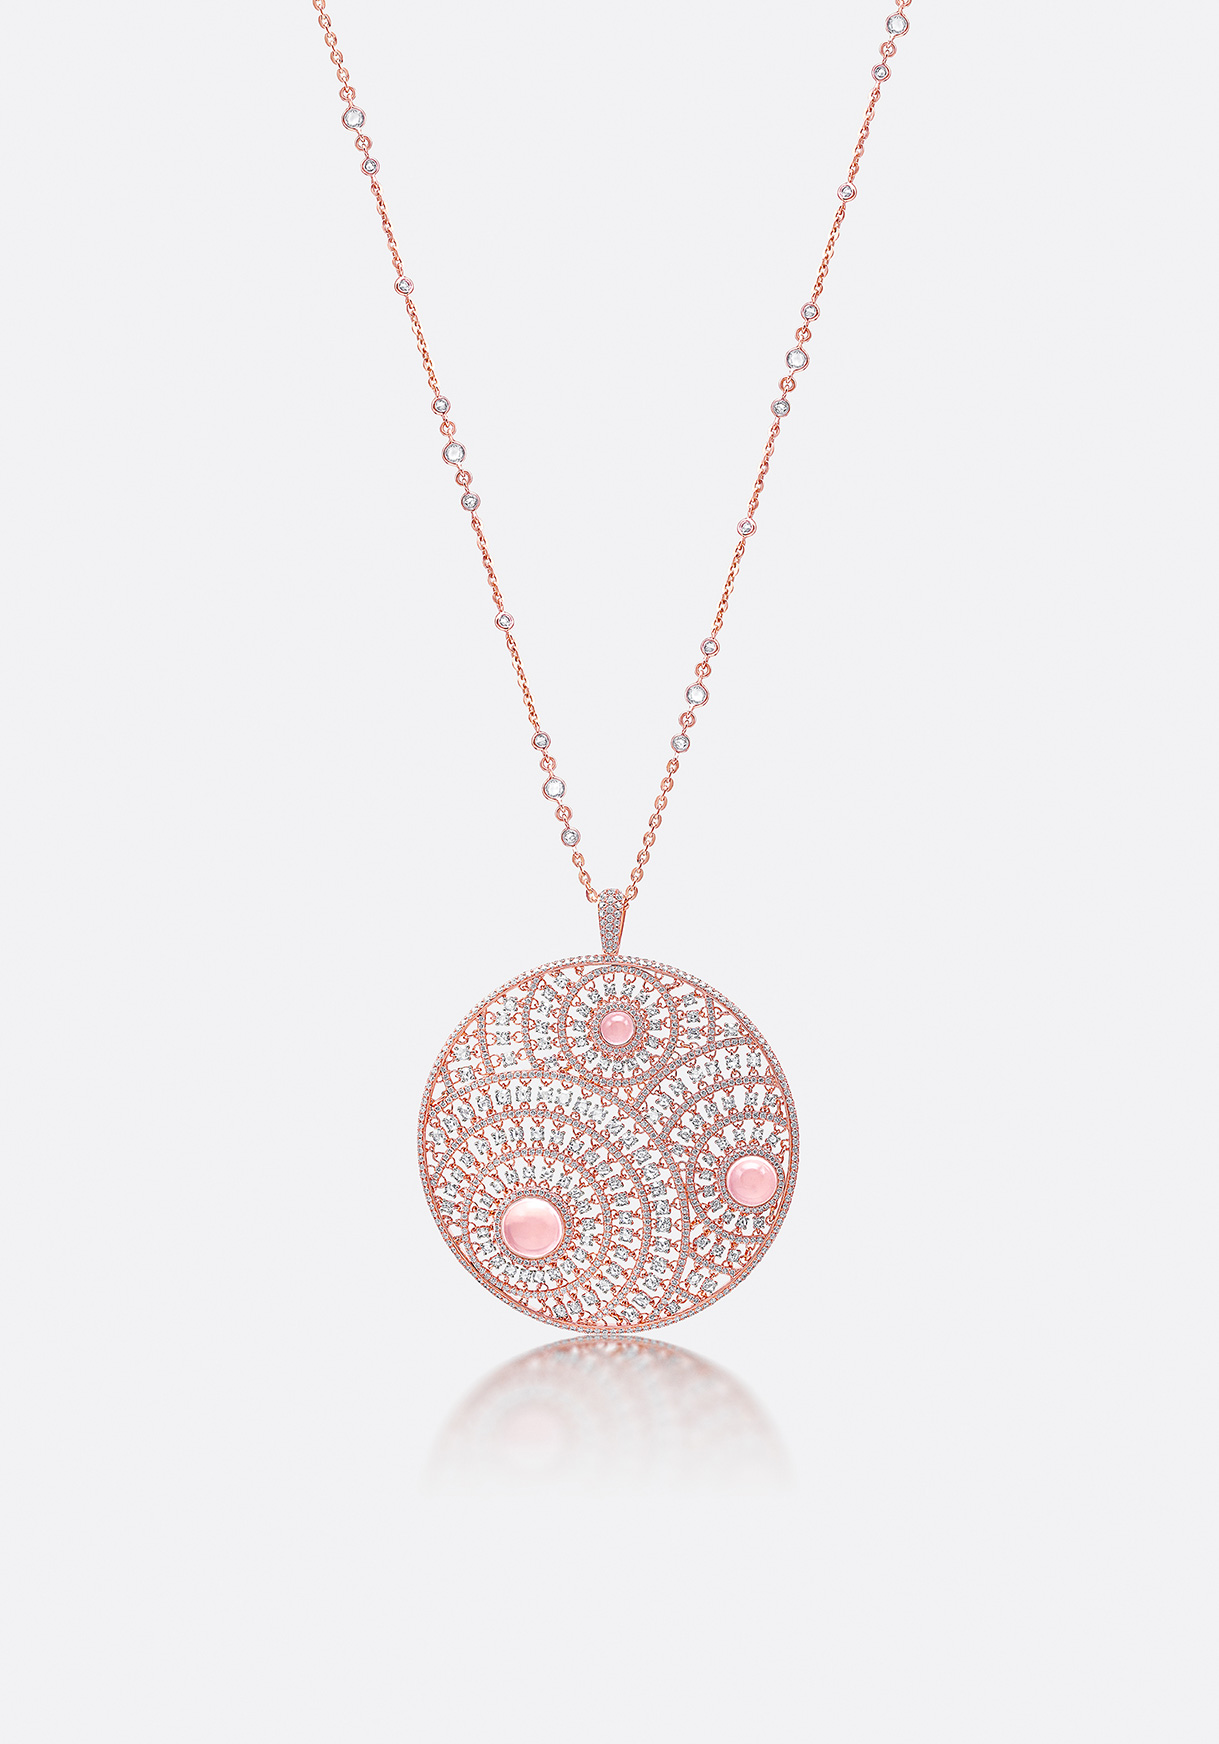 Diamonds are patterned around elegant, centred rose quartzes.